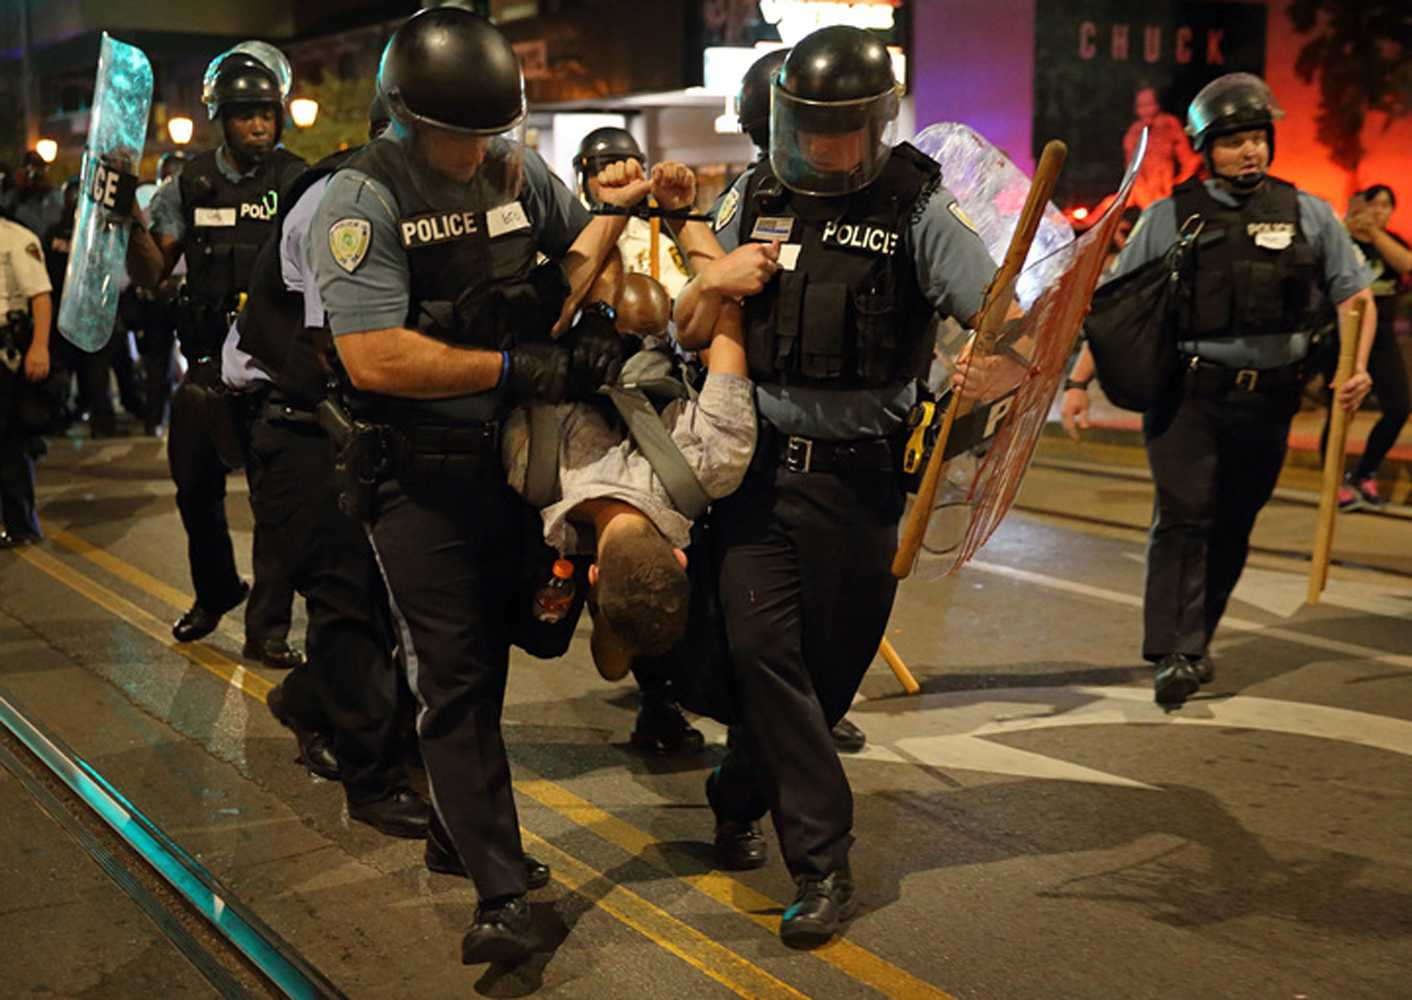 Police officers arrest a man during a confrontational protest on Delmar Boulevard in University City on Sept. 16, 2017. (David Carson/St. Louis Post-Dispatch/TNS)